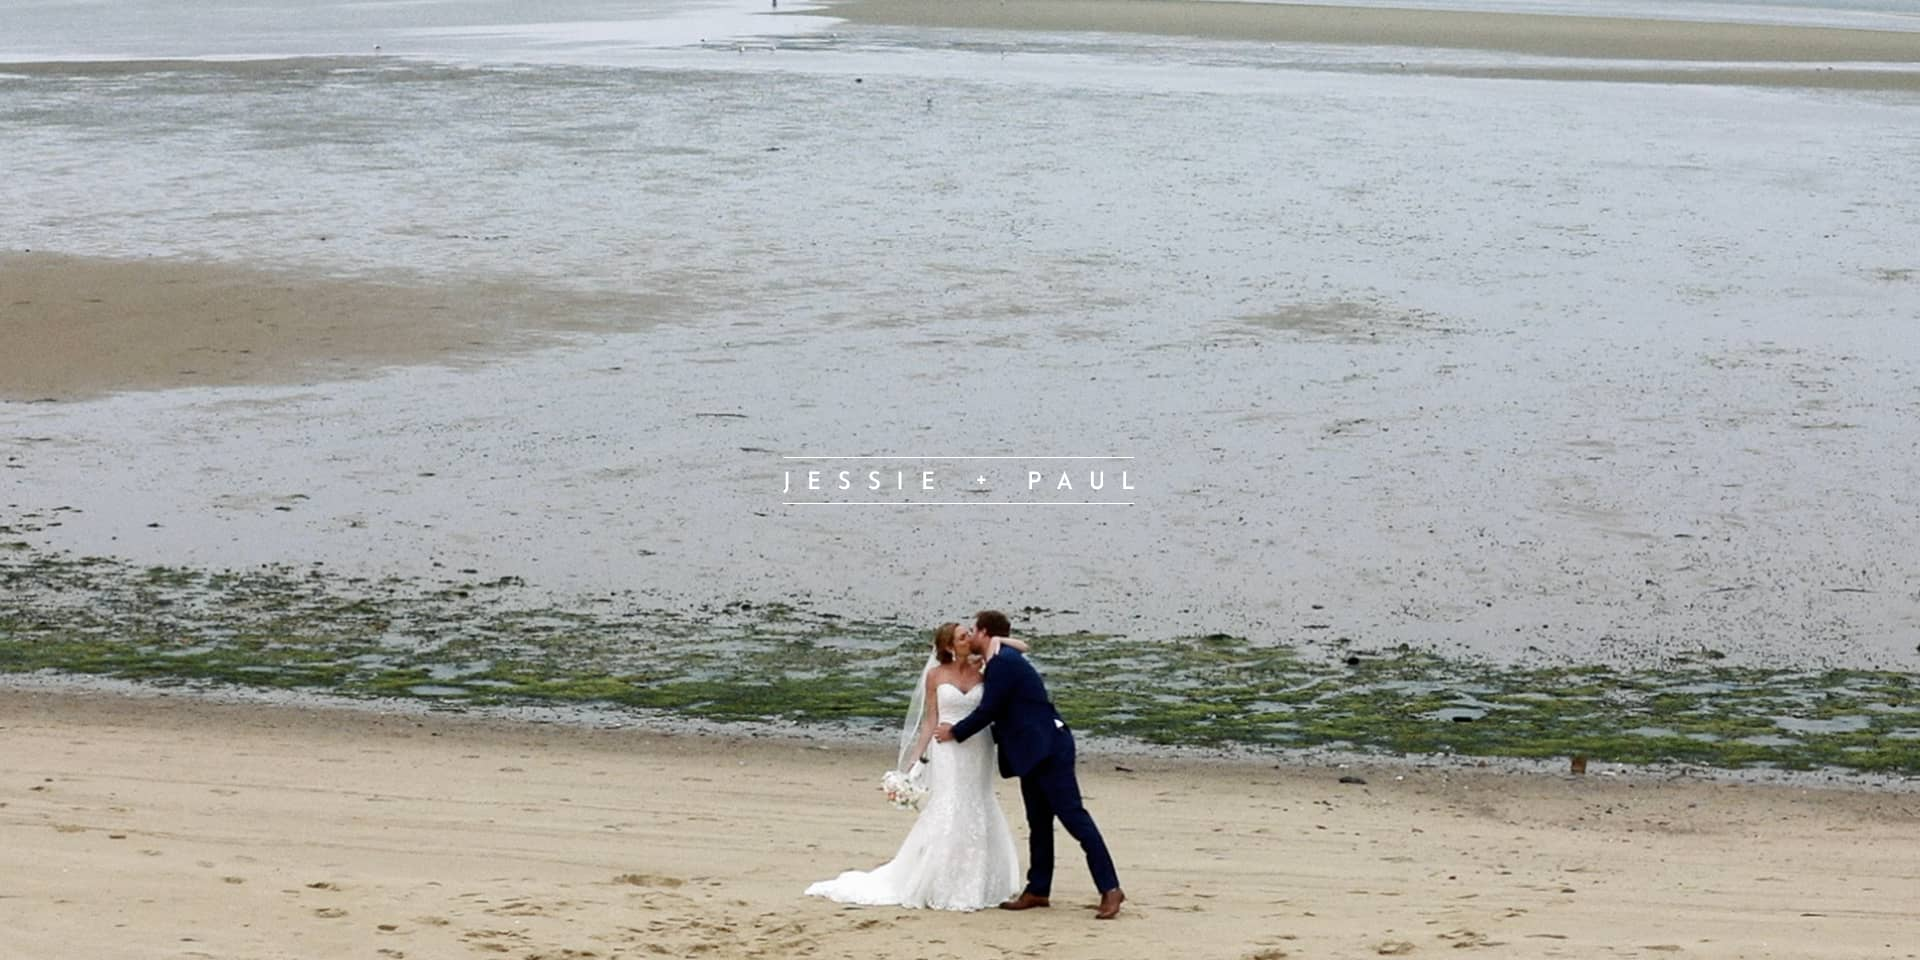 Jessie + Paul | North Eastham, Massachusetts | Groom's home